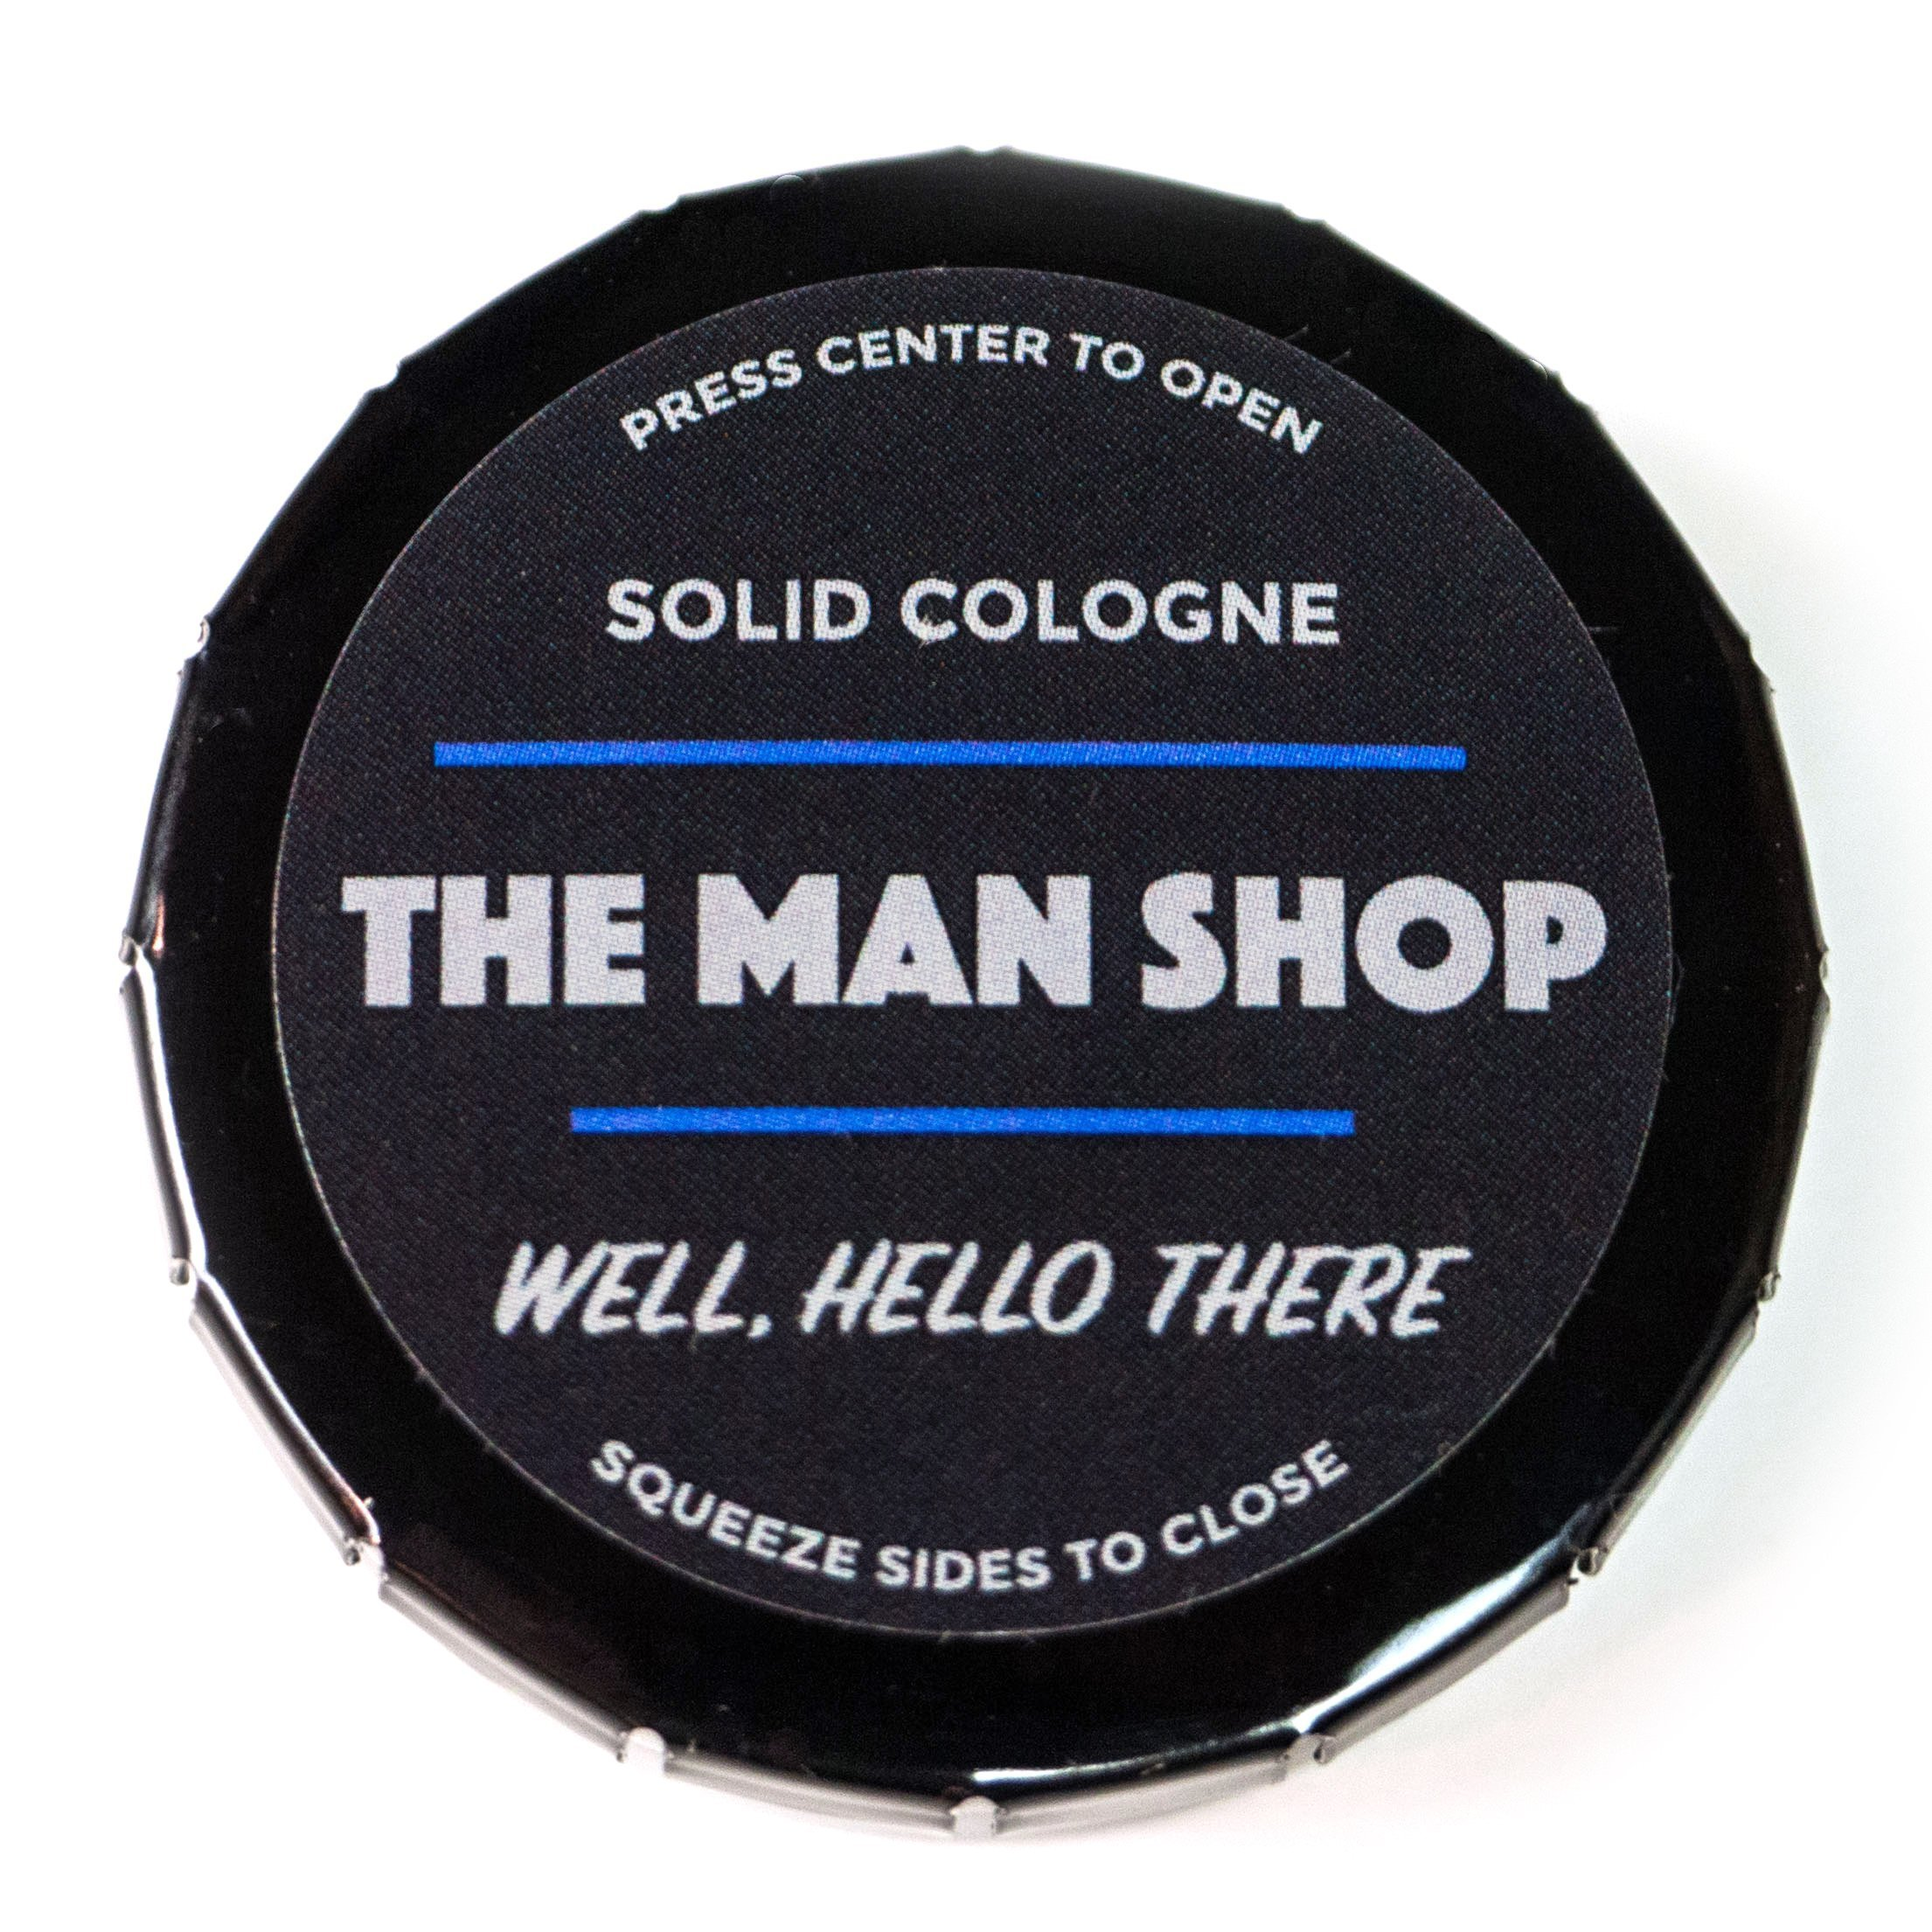 Well, Hello There Men's Solid Cologne (0.4 oz) The Man Shop